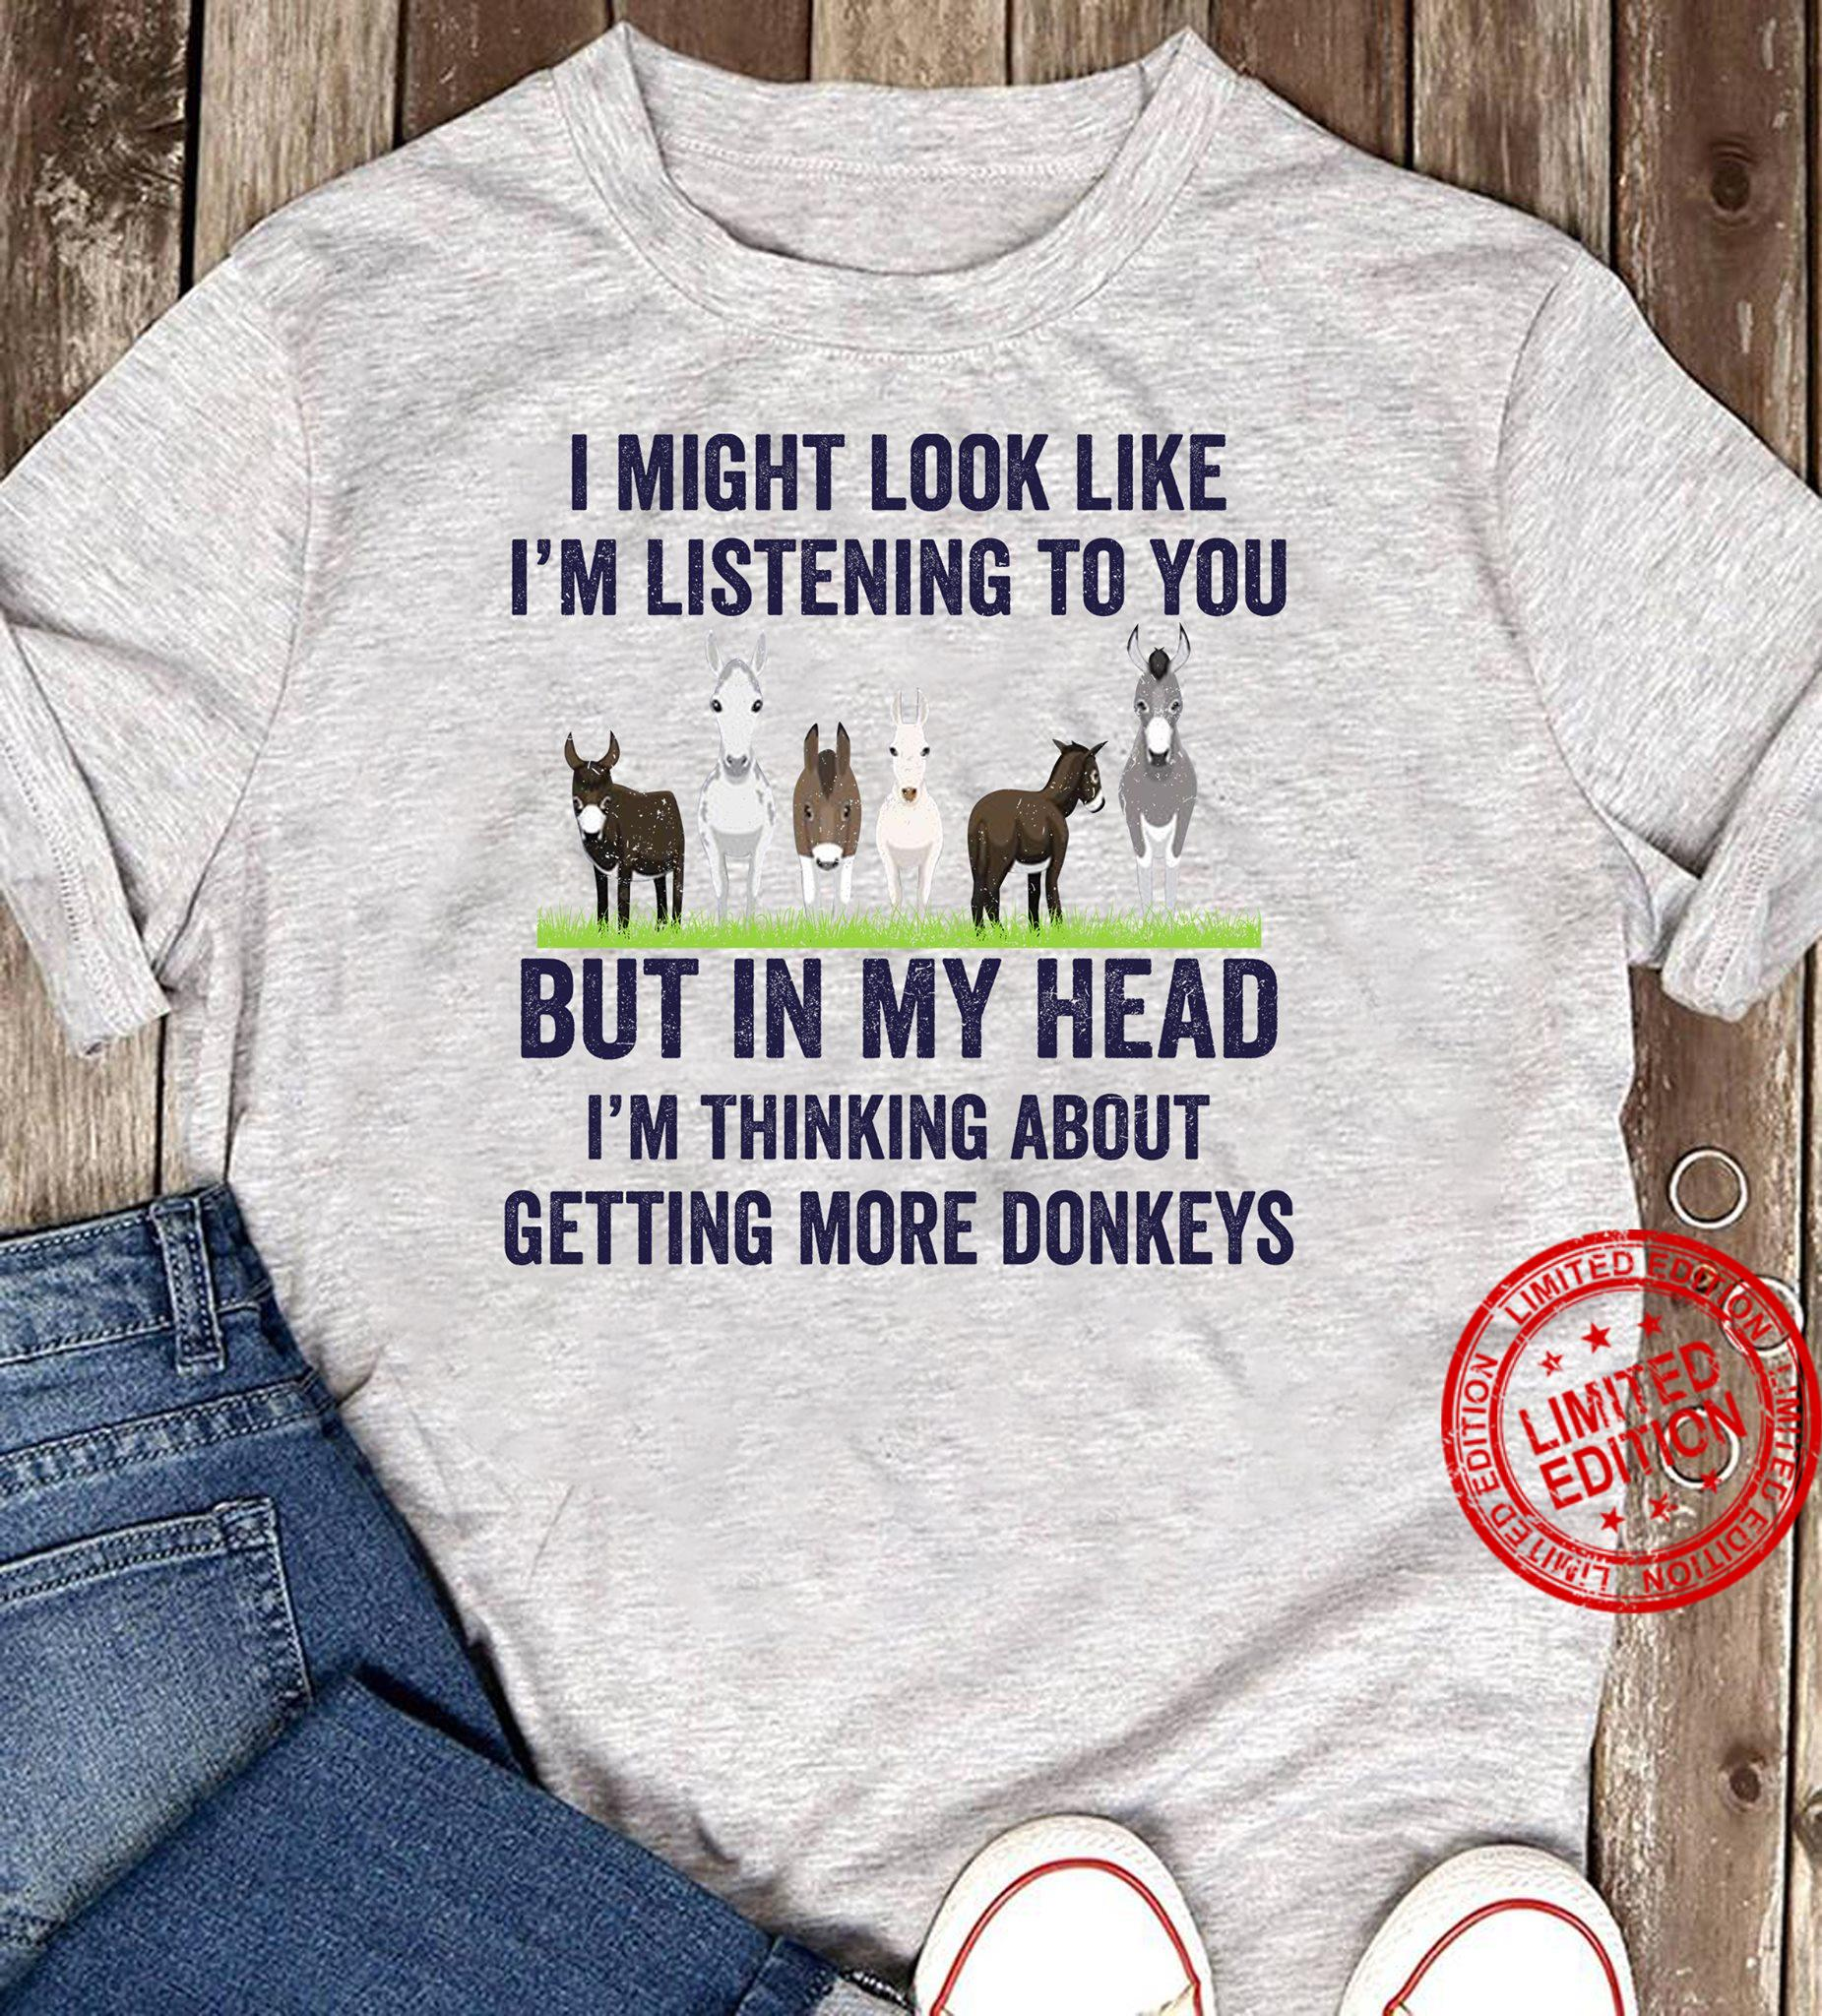 I Might Look Like I'm Listening To You But In My Head I'm Thinking About Getting More Donkeys Shirt